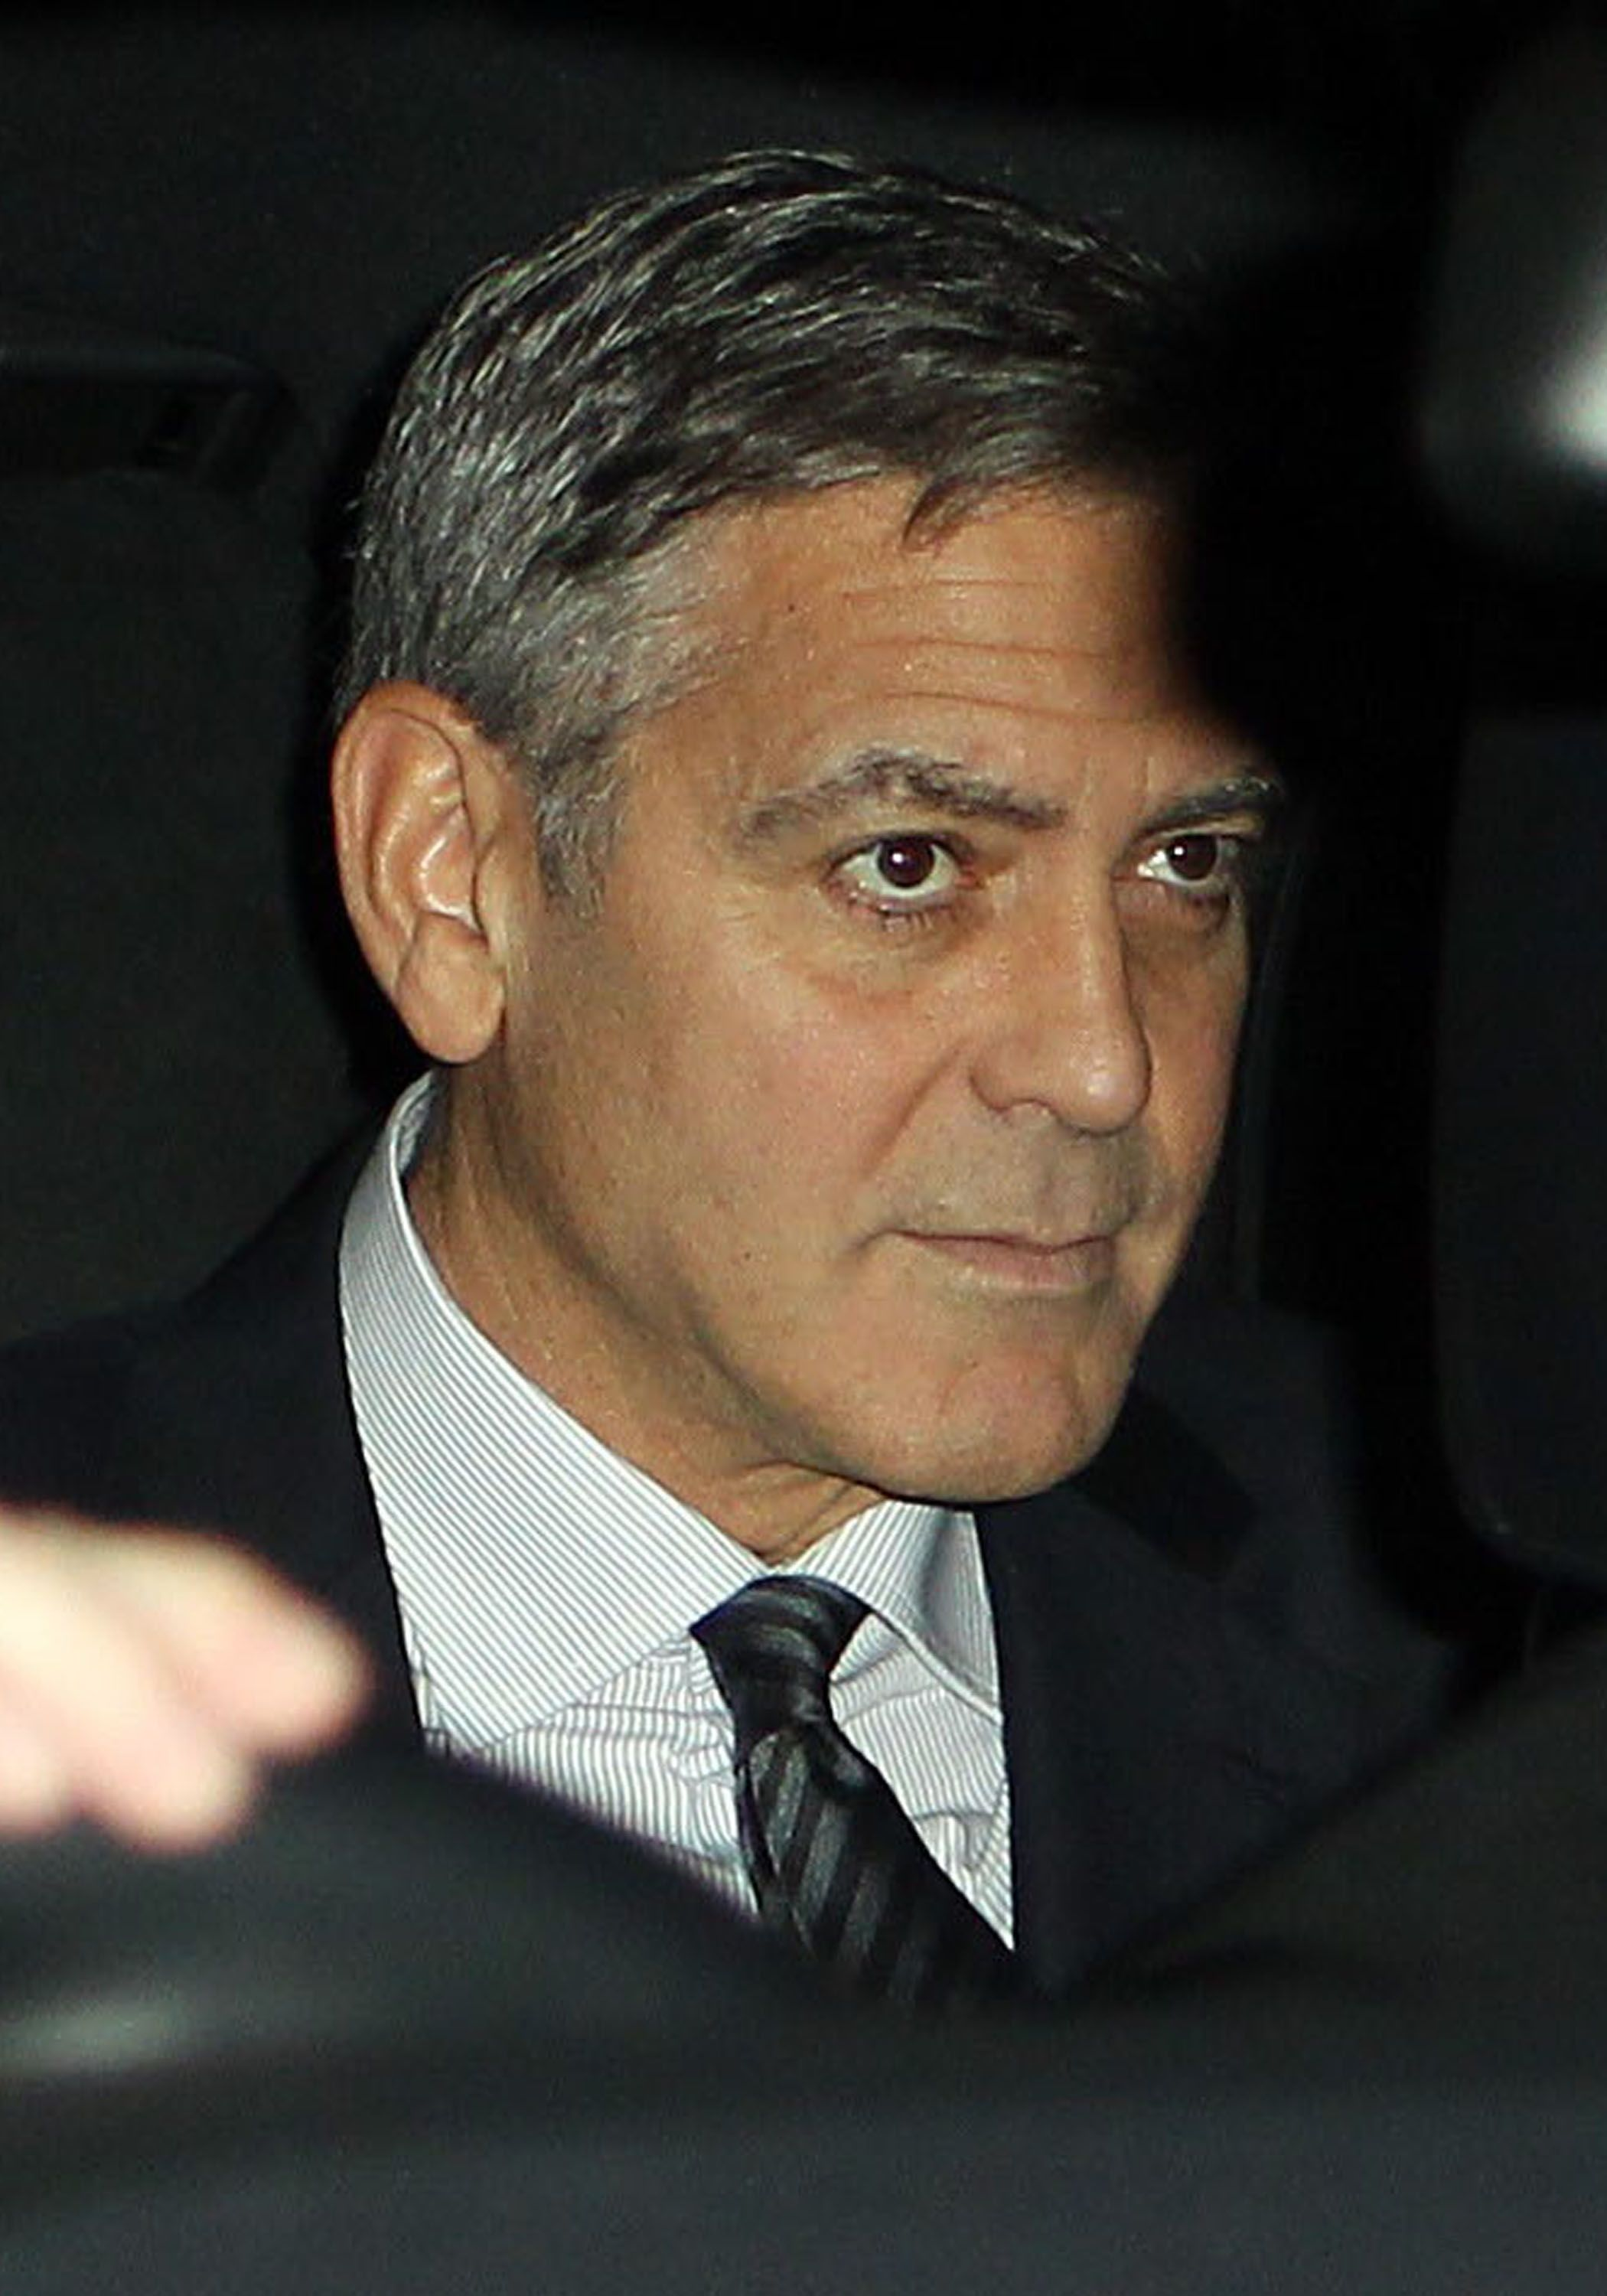 George clooney google search male actors pinterest george